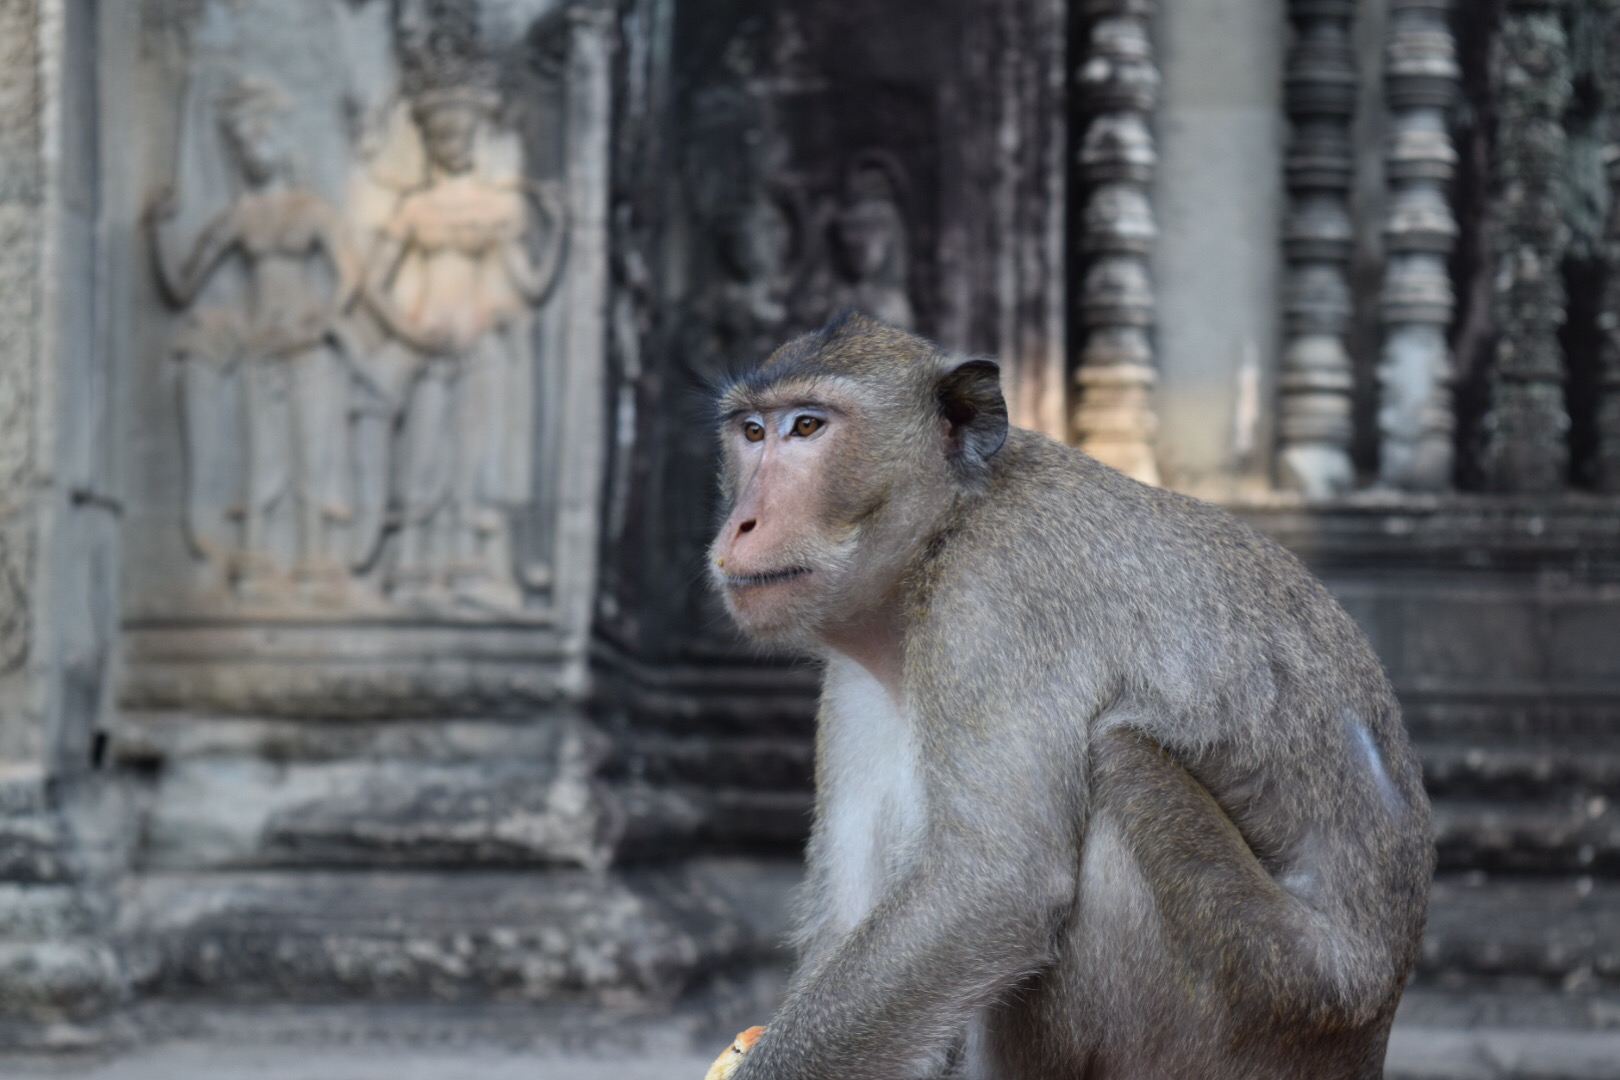 Easter weekend in a Hindu/Buddhist temple. It's hard even for an Angkor Wat monkey to comprehend.